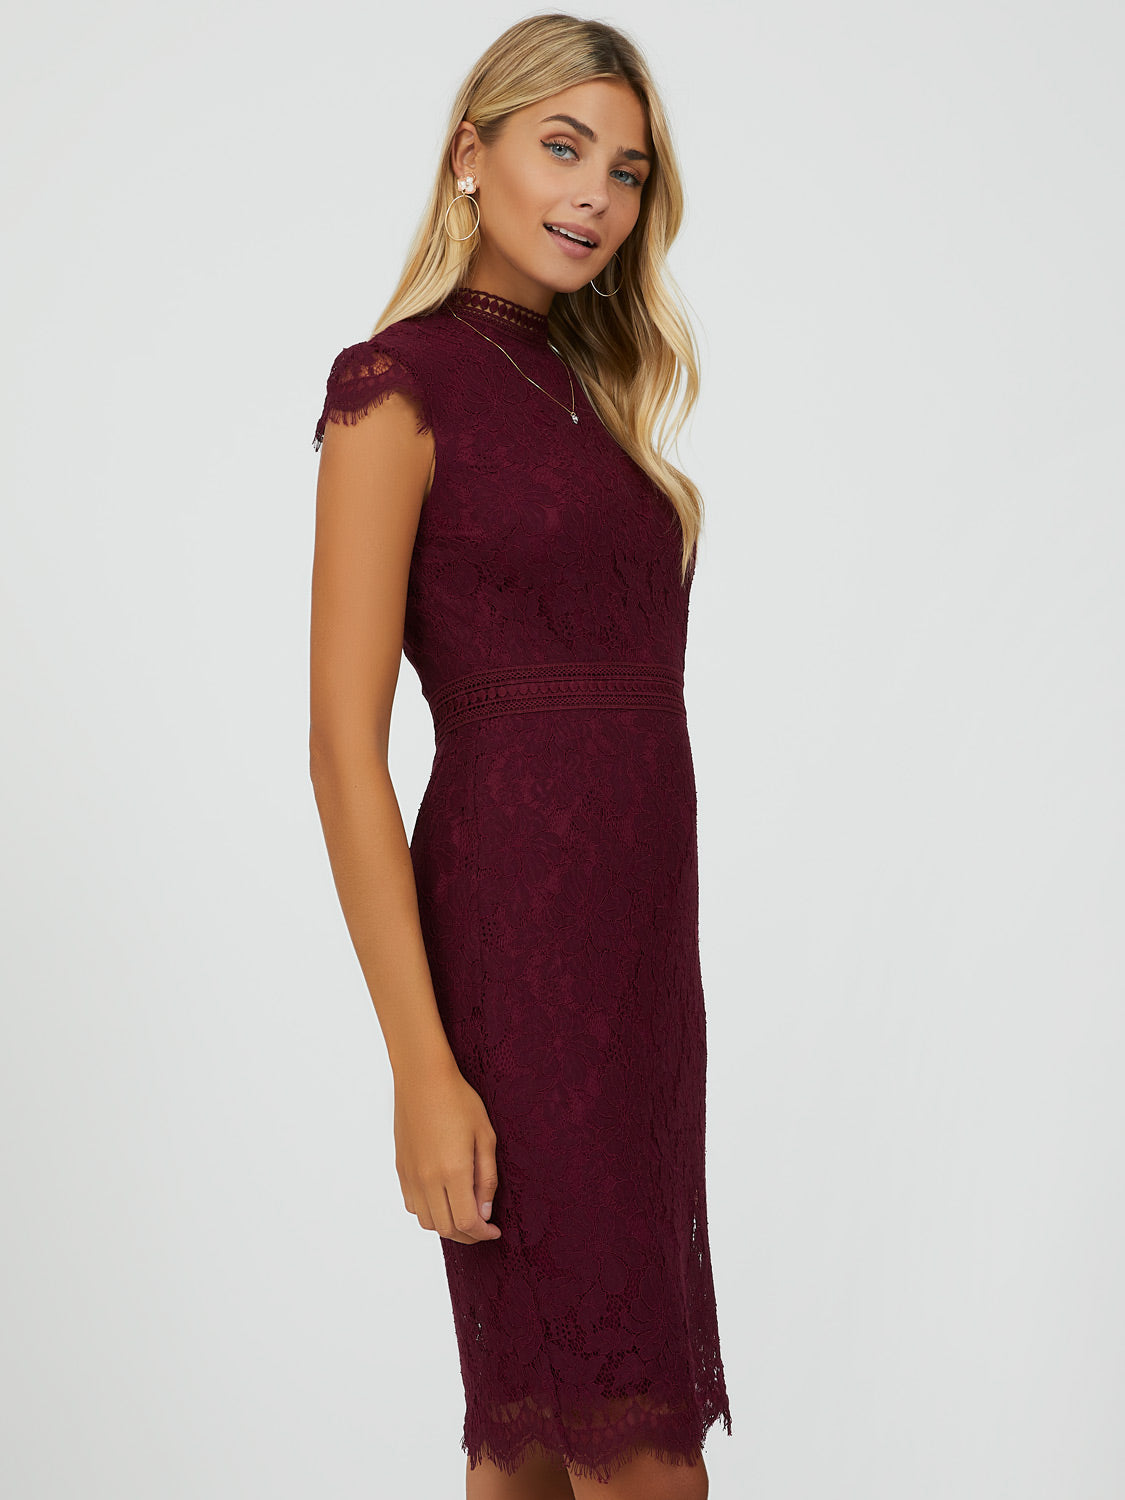 Cap Sleeve Mock Neck Lace Dress